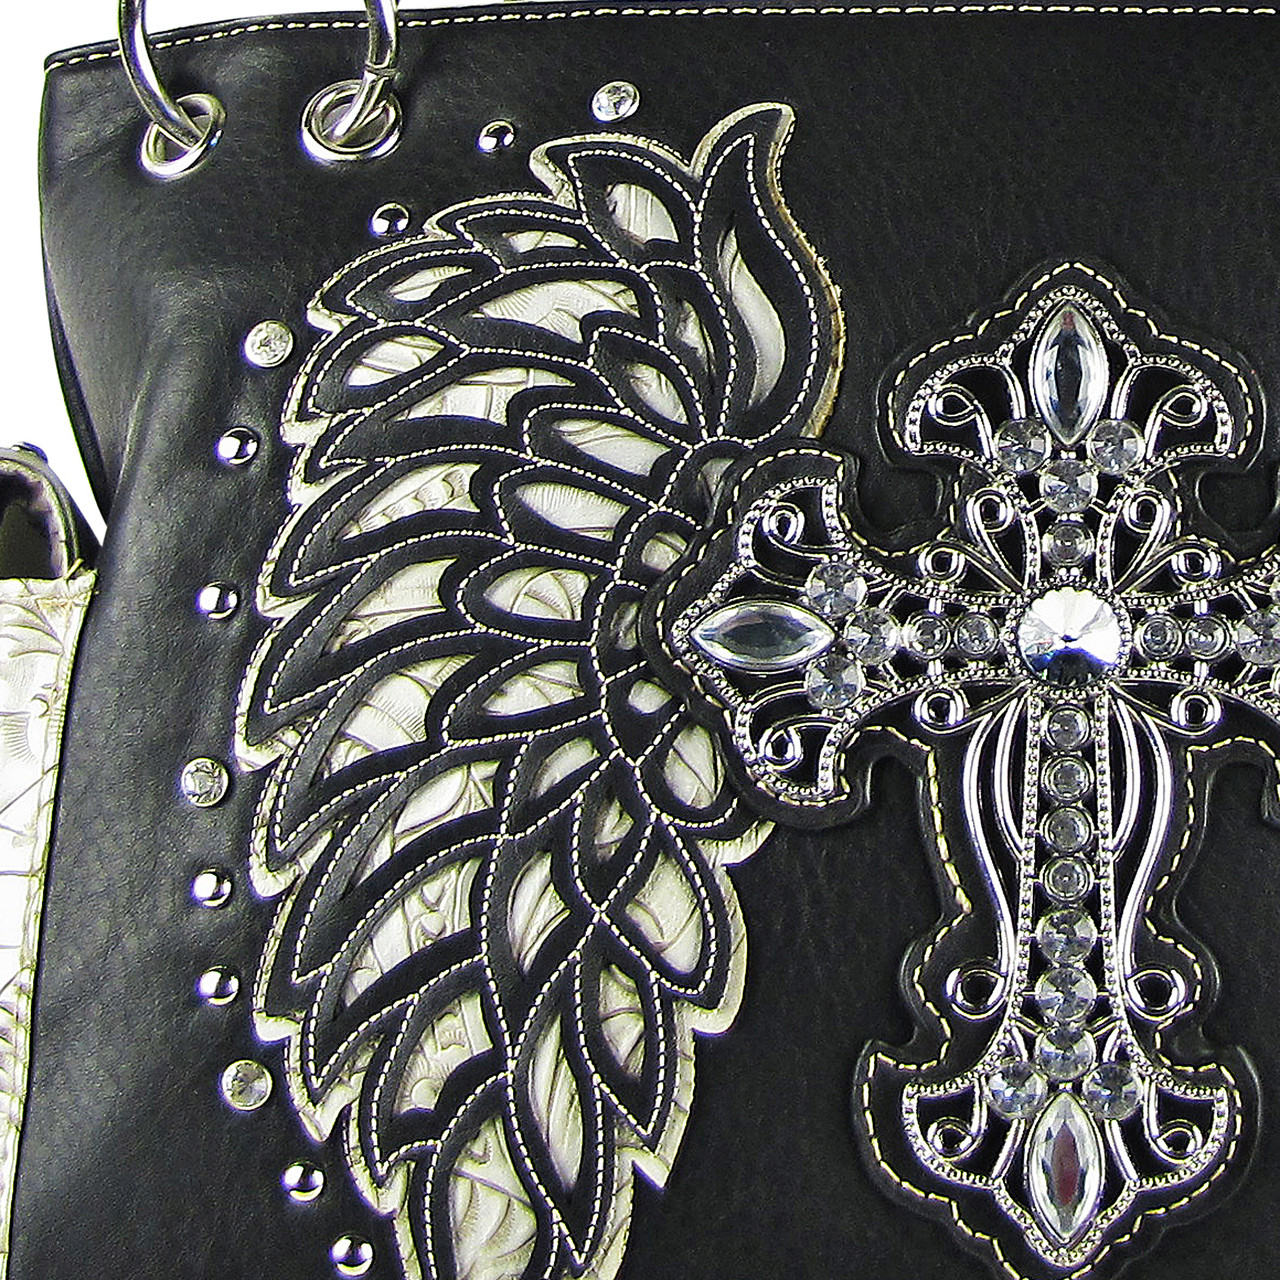 BLACK RHINESTONE CROSS WITH TOOLED WINGS LOOK SHOULDER HANDBAG HB1-15LCRBLK